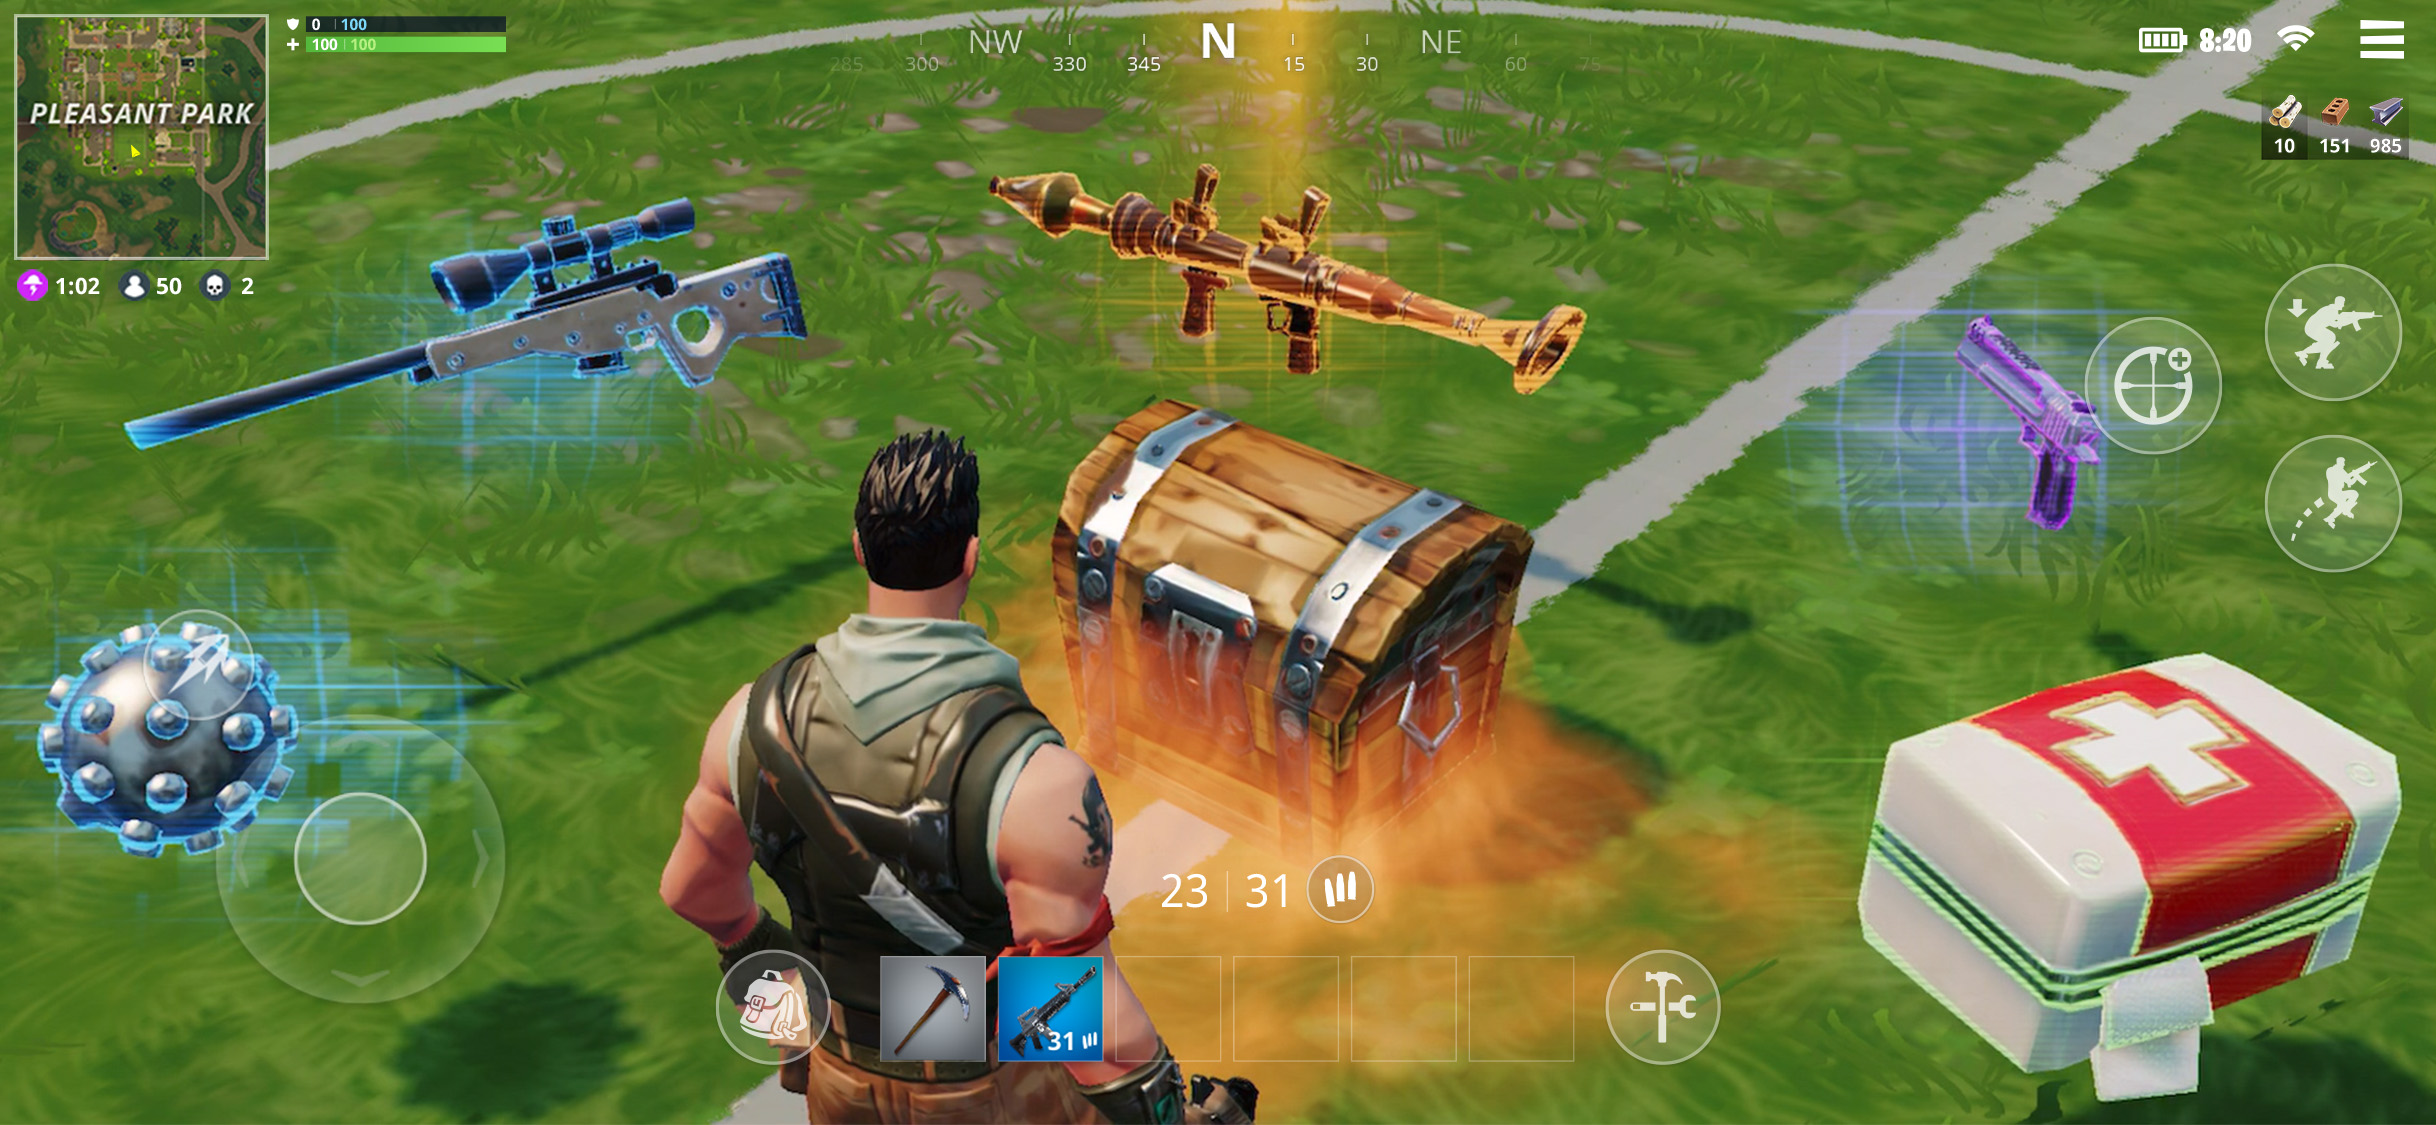 You can still win in Fortnite without being good at building, but you should probably still learn.